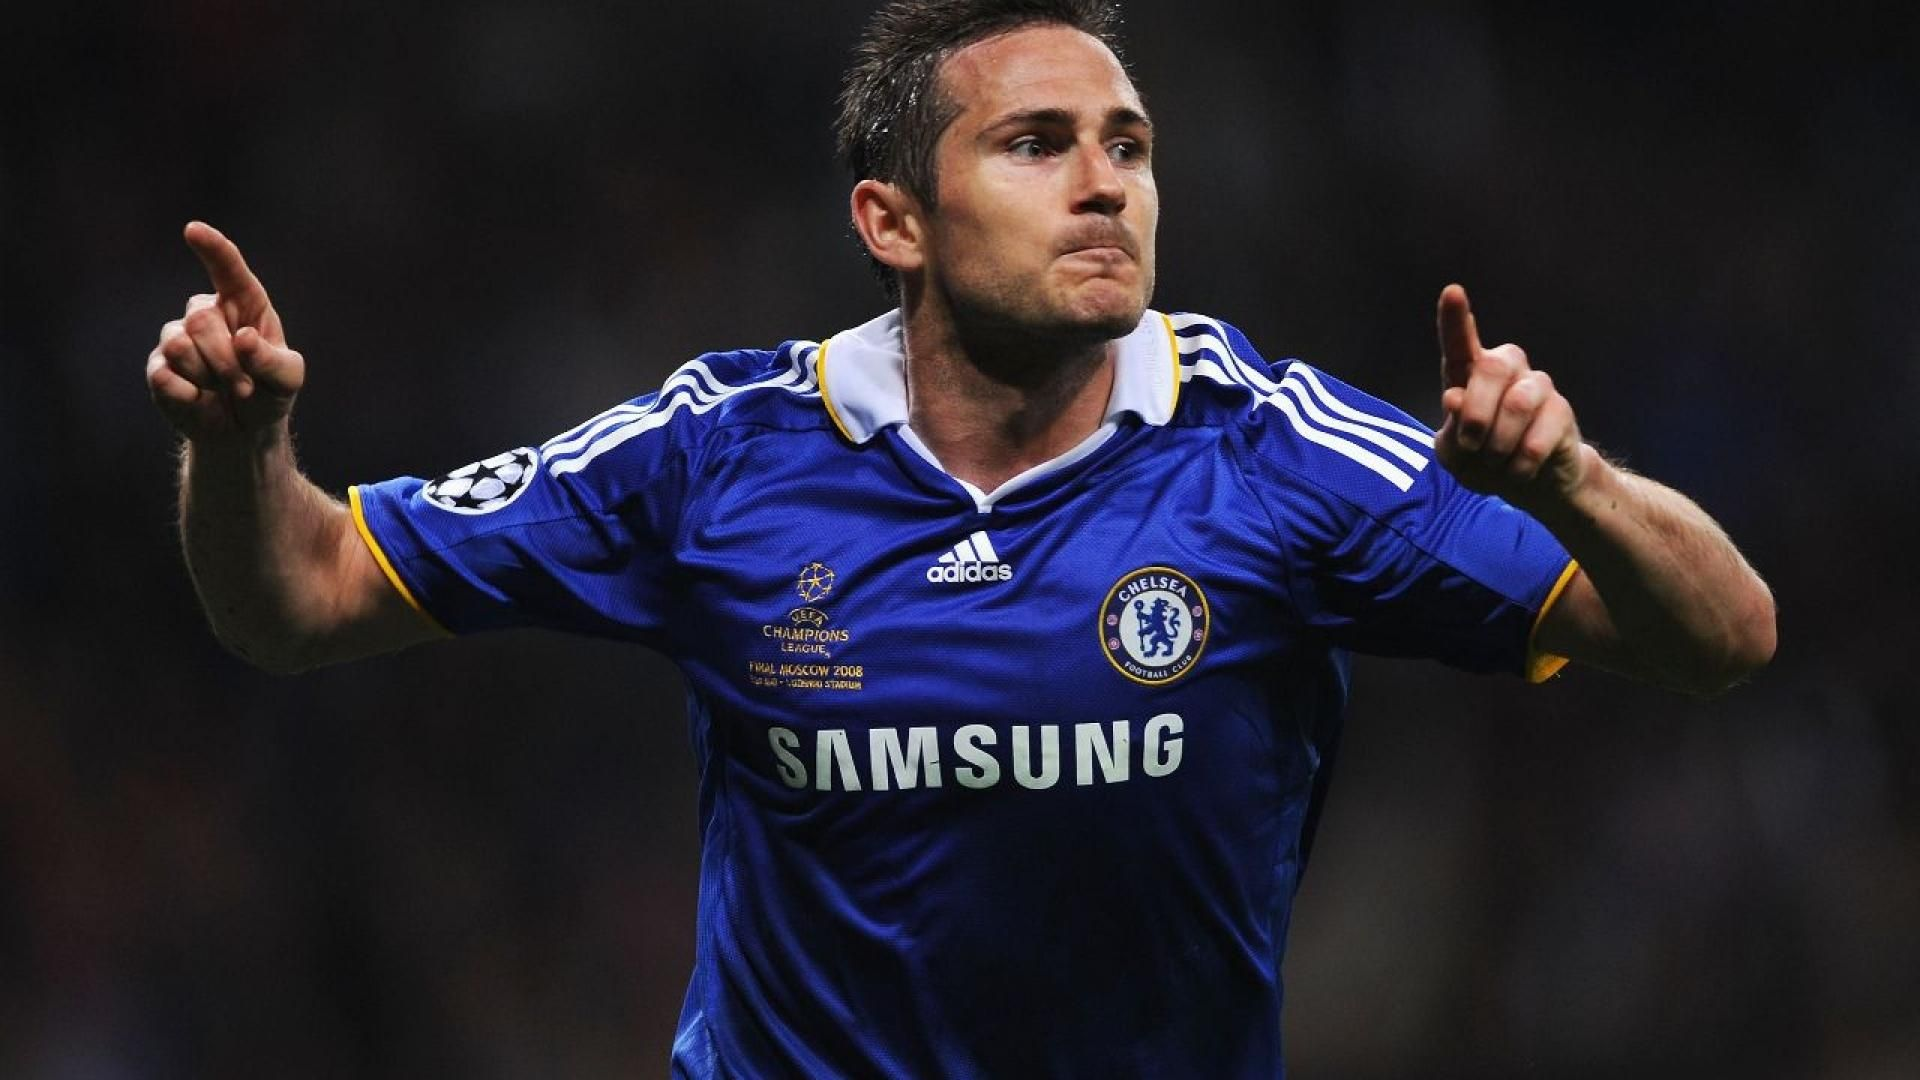 Frank Lampard Football Players Image Freeeasypics Pinterest